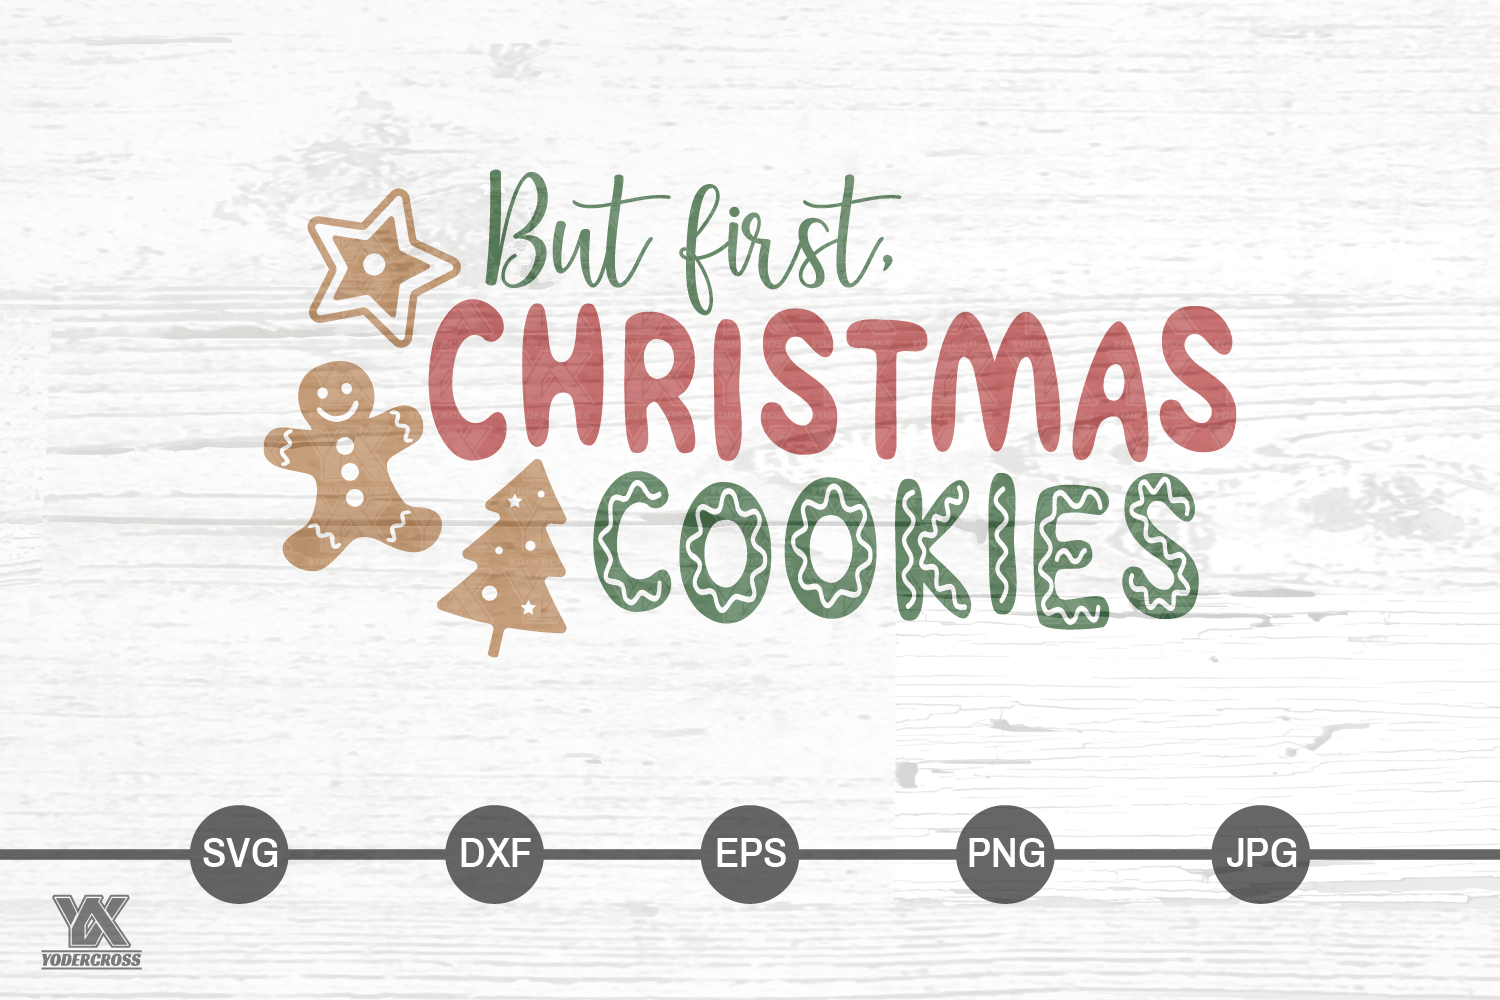 But First, Christmas Cookies SVG example image 4